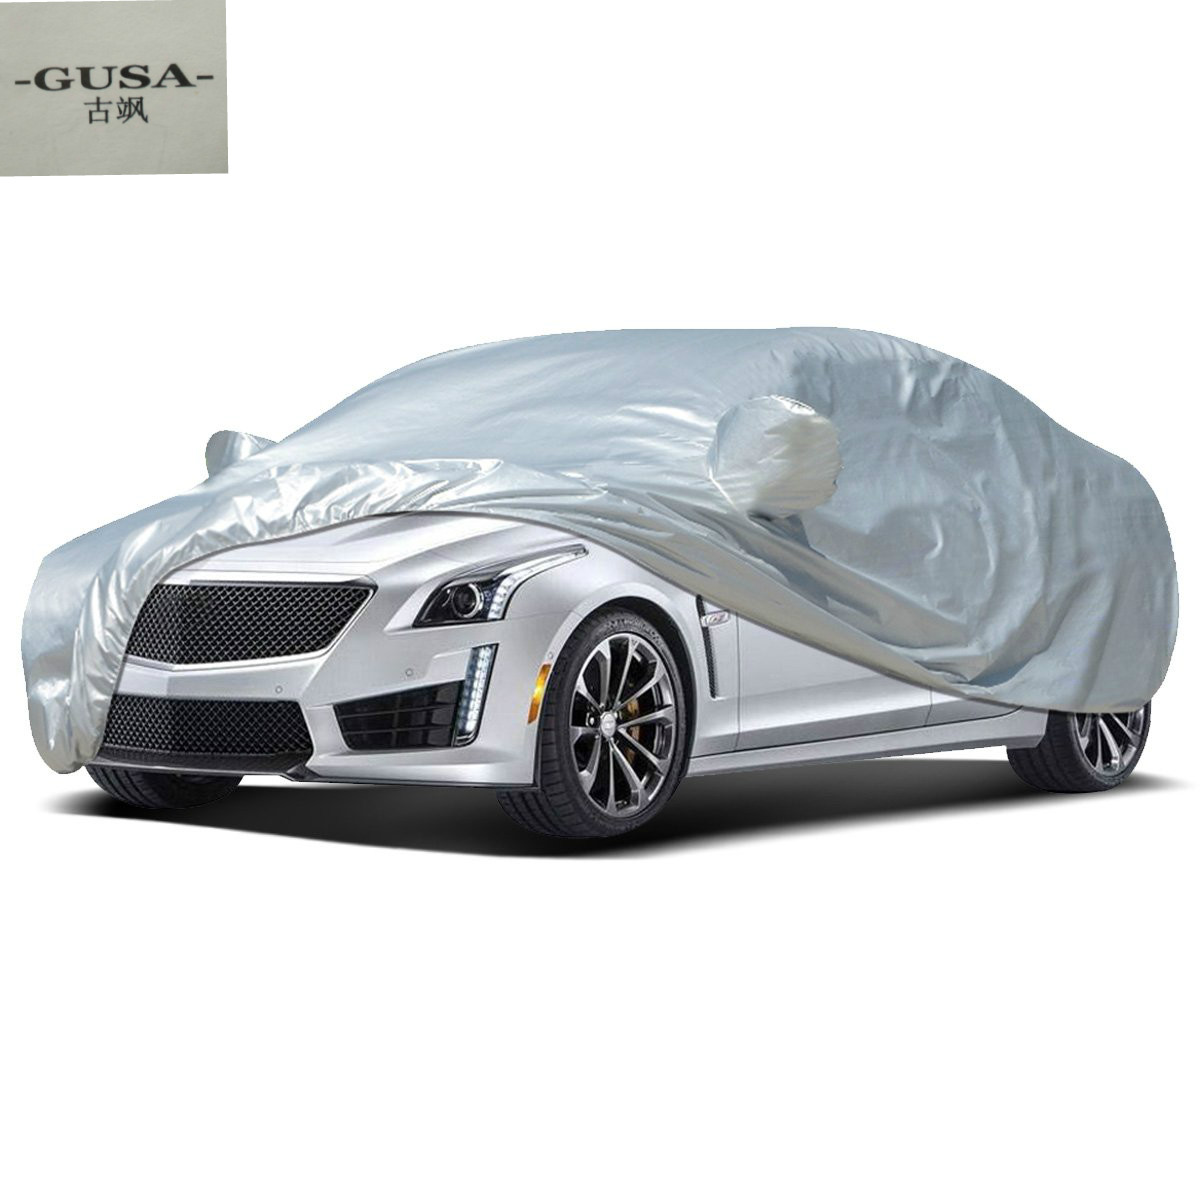 Full-Car-Cover Protection Auto-Accessories Sedan Outdoor SUV XL Snow M D30 Coats Dust-Resistant title=